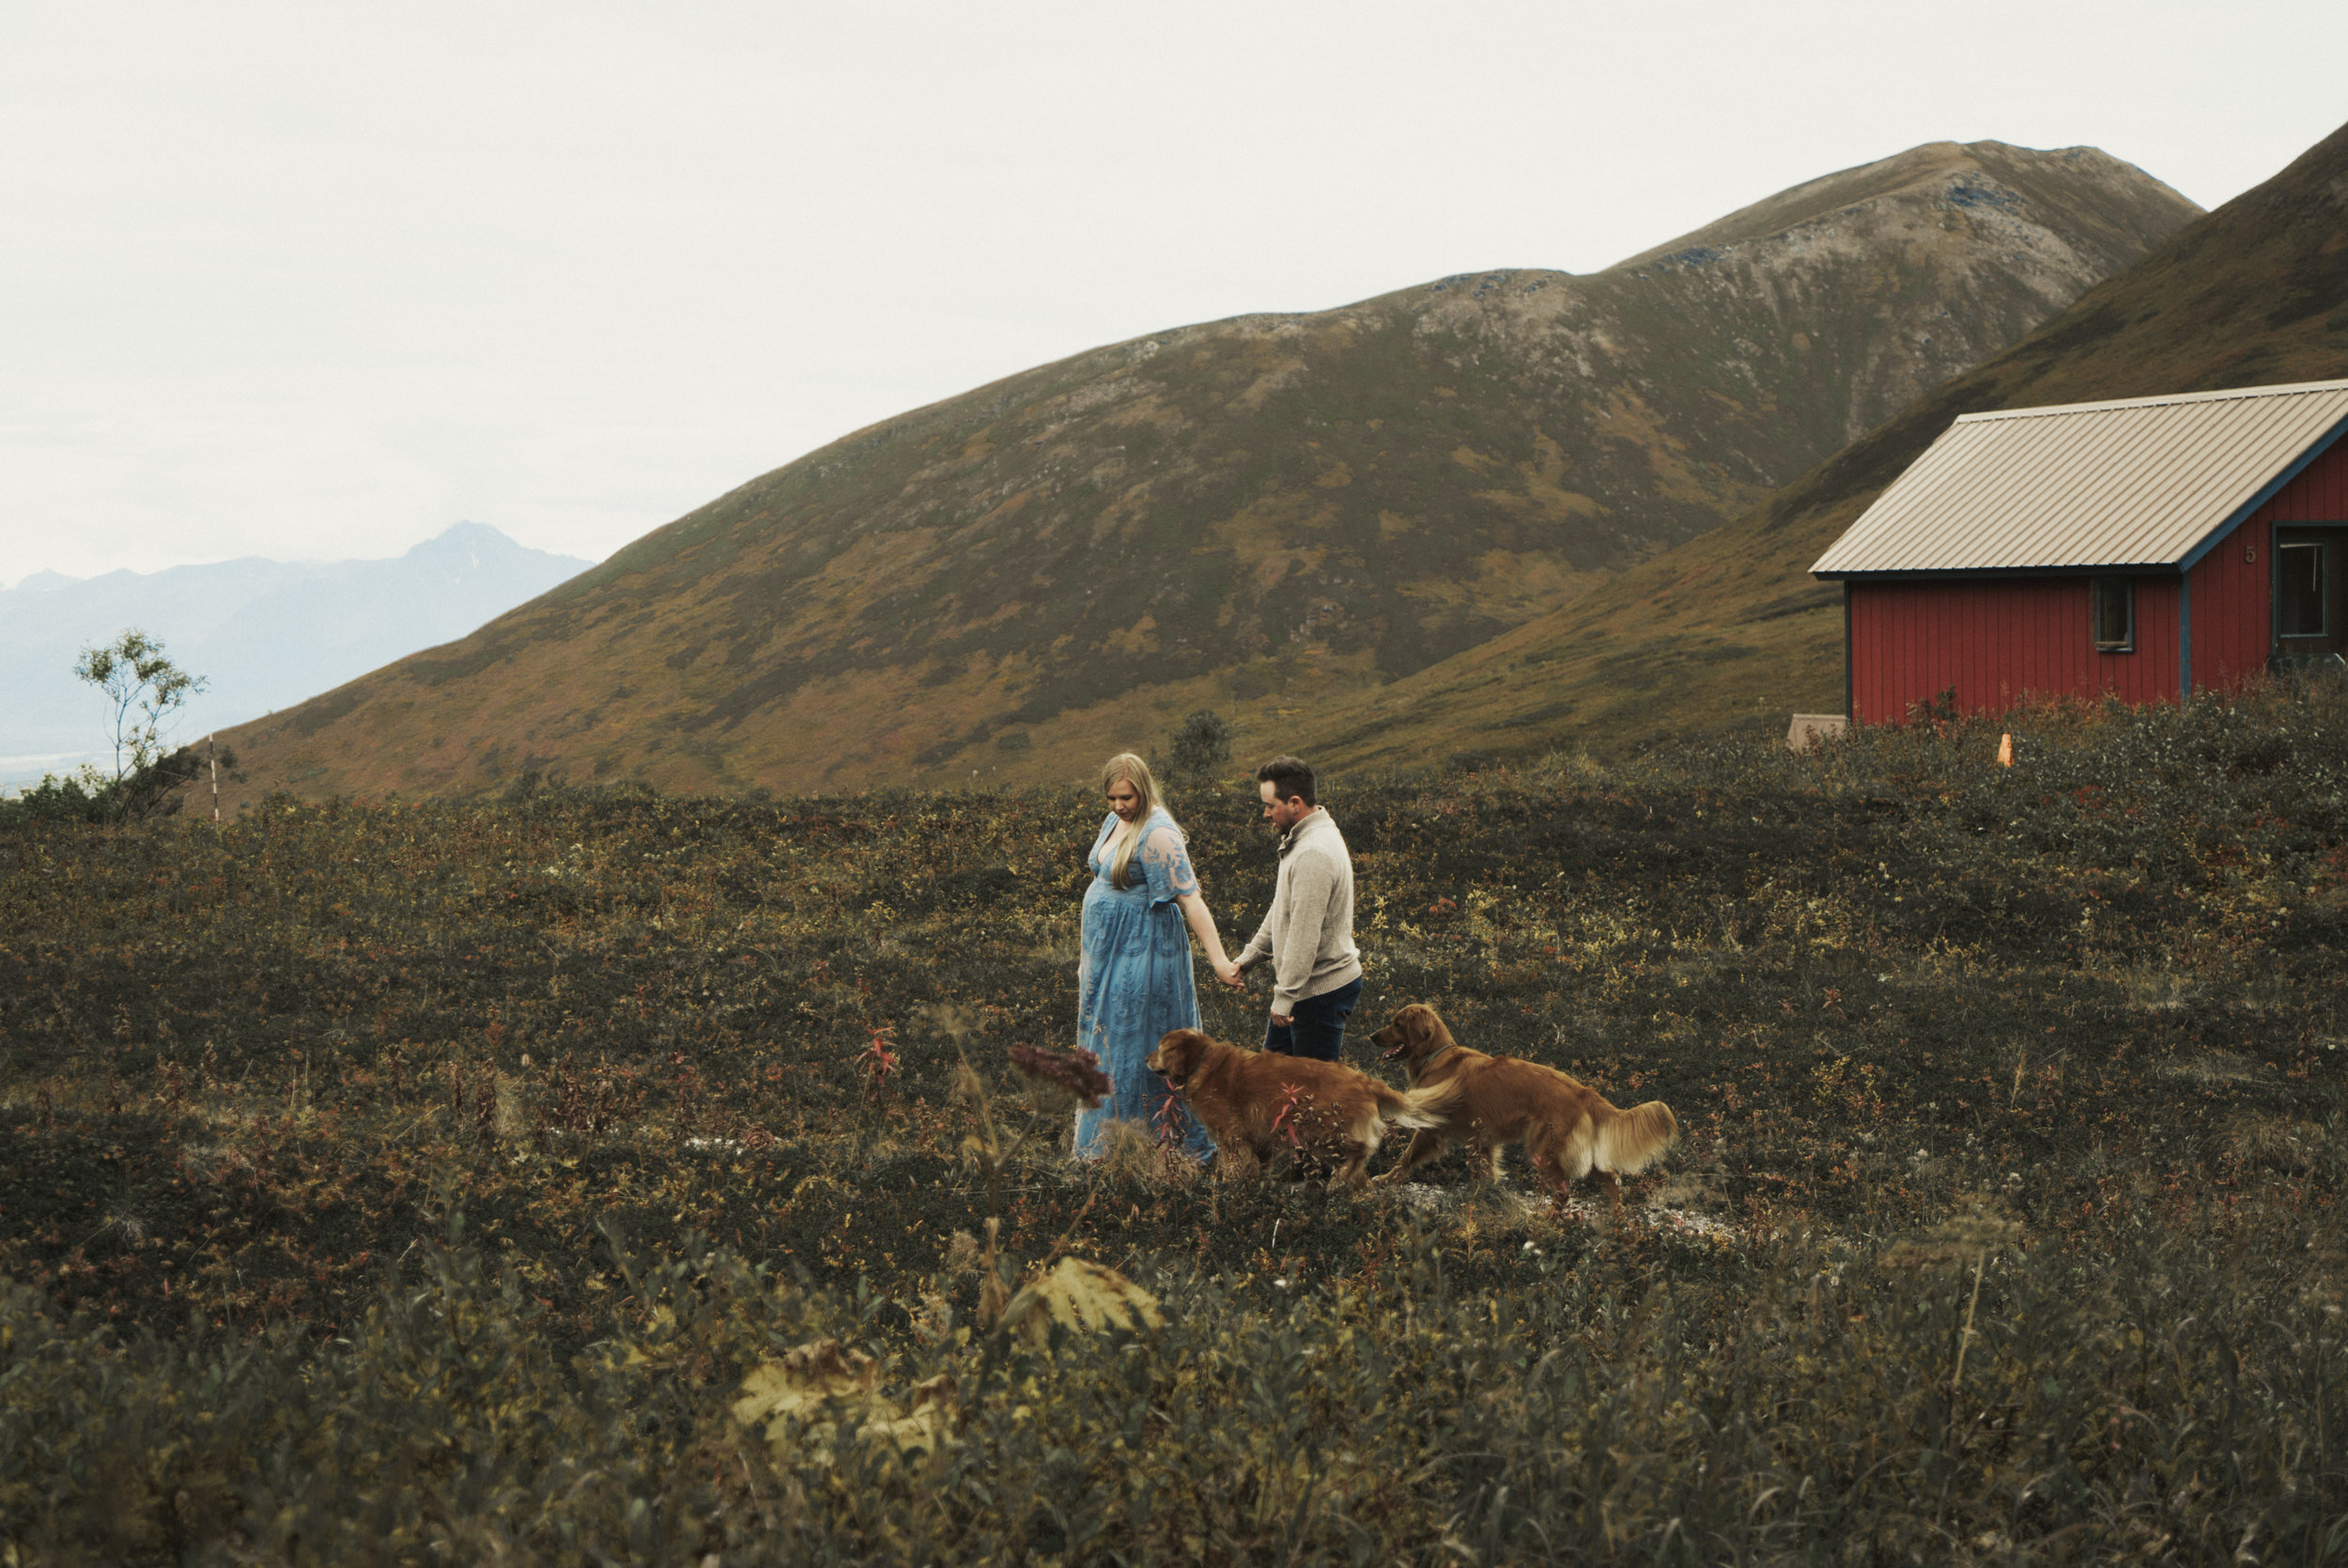 Chasen & Ari - Maternity photo set in Alaska wilderness with a favorite family